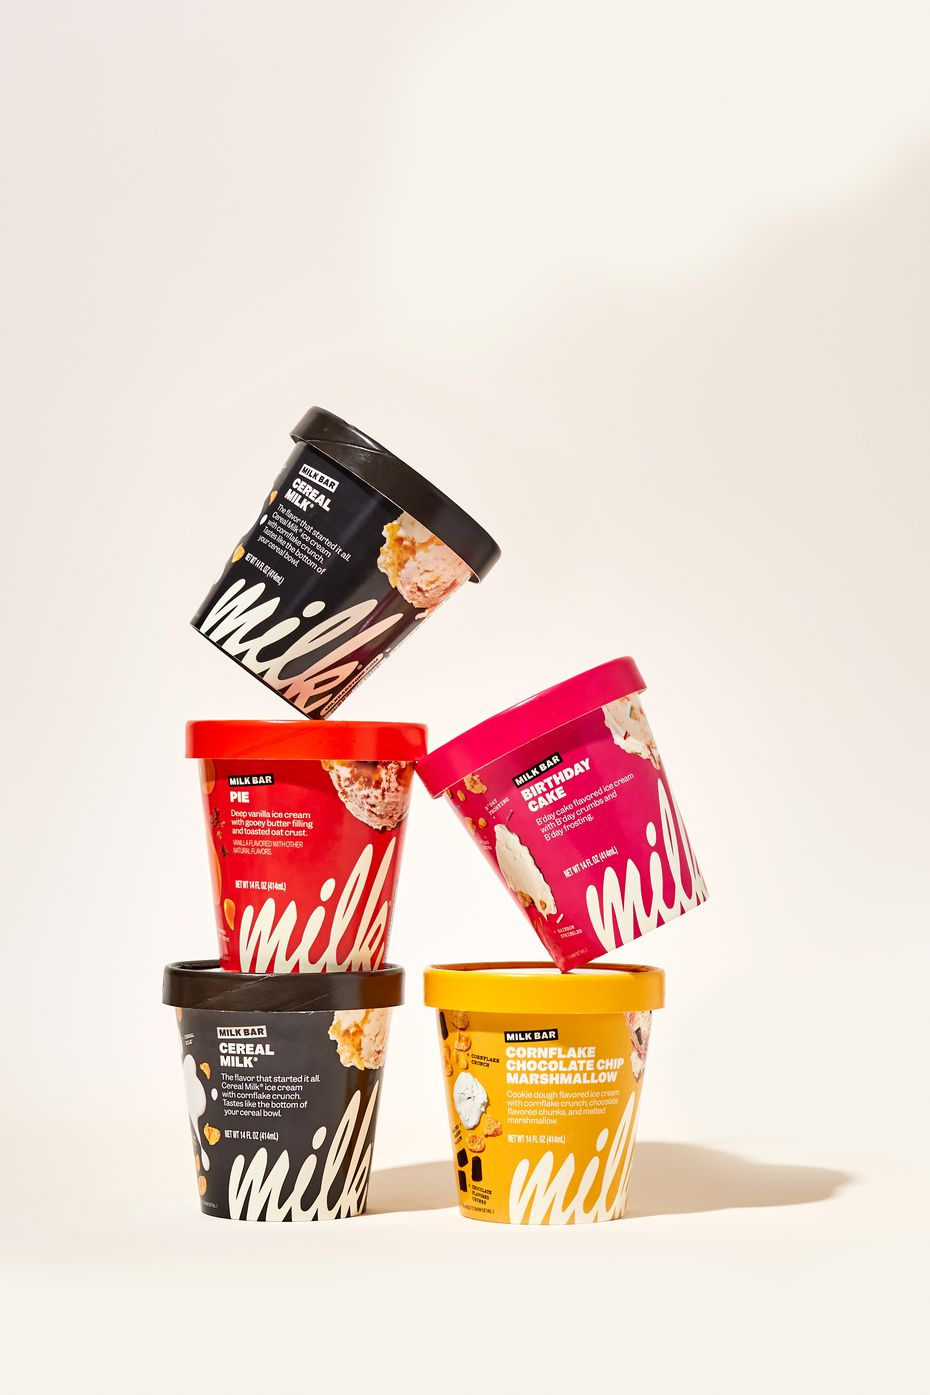 Milk Bar ice cream pints are coming to Whole Foods this summer. The four flavors include Birthday Cake, Cereal Milk, Cornflake Chocolate Chip Marshmallow and Milk Bar Pie.